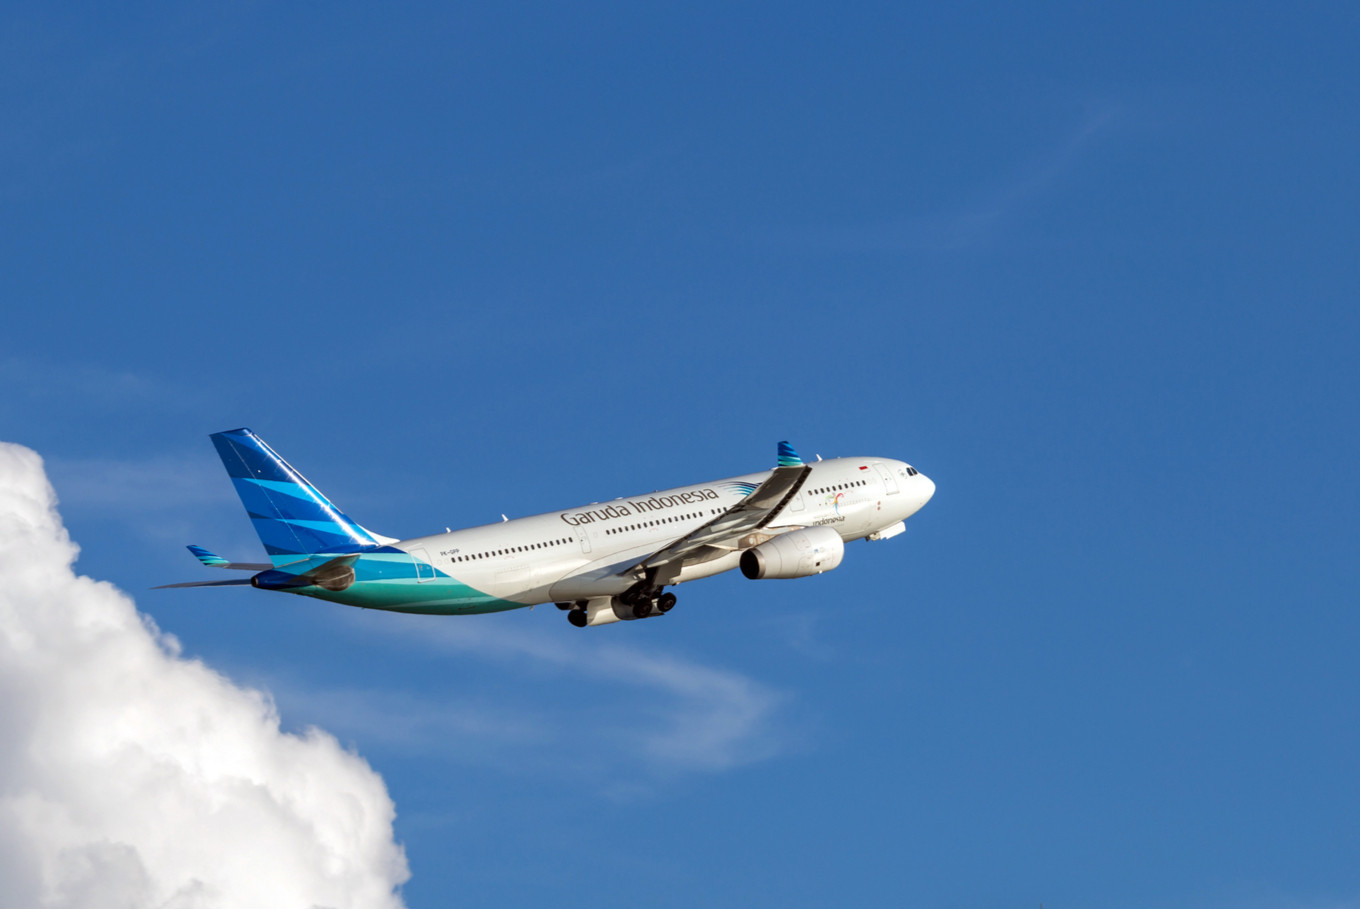 Garuda plans to open direct flights to Bali from US, France, India to boost tourism